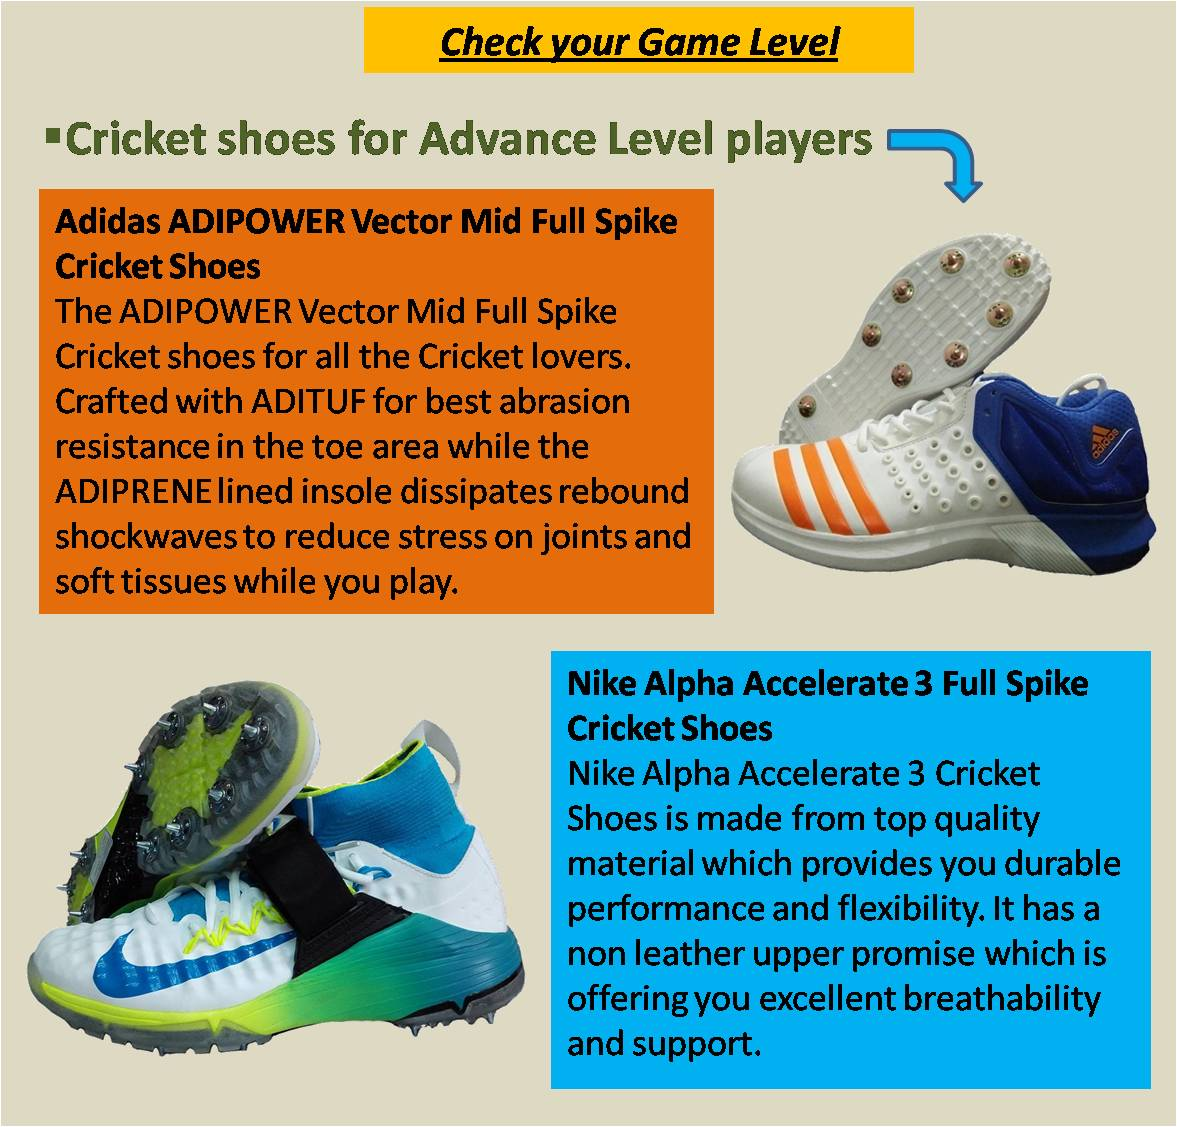 Cricket shoes for Advance Level players 3